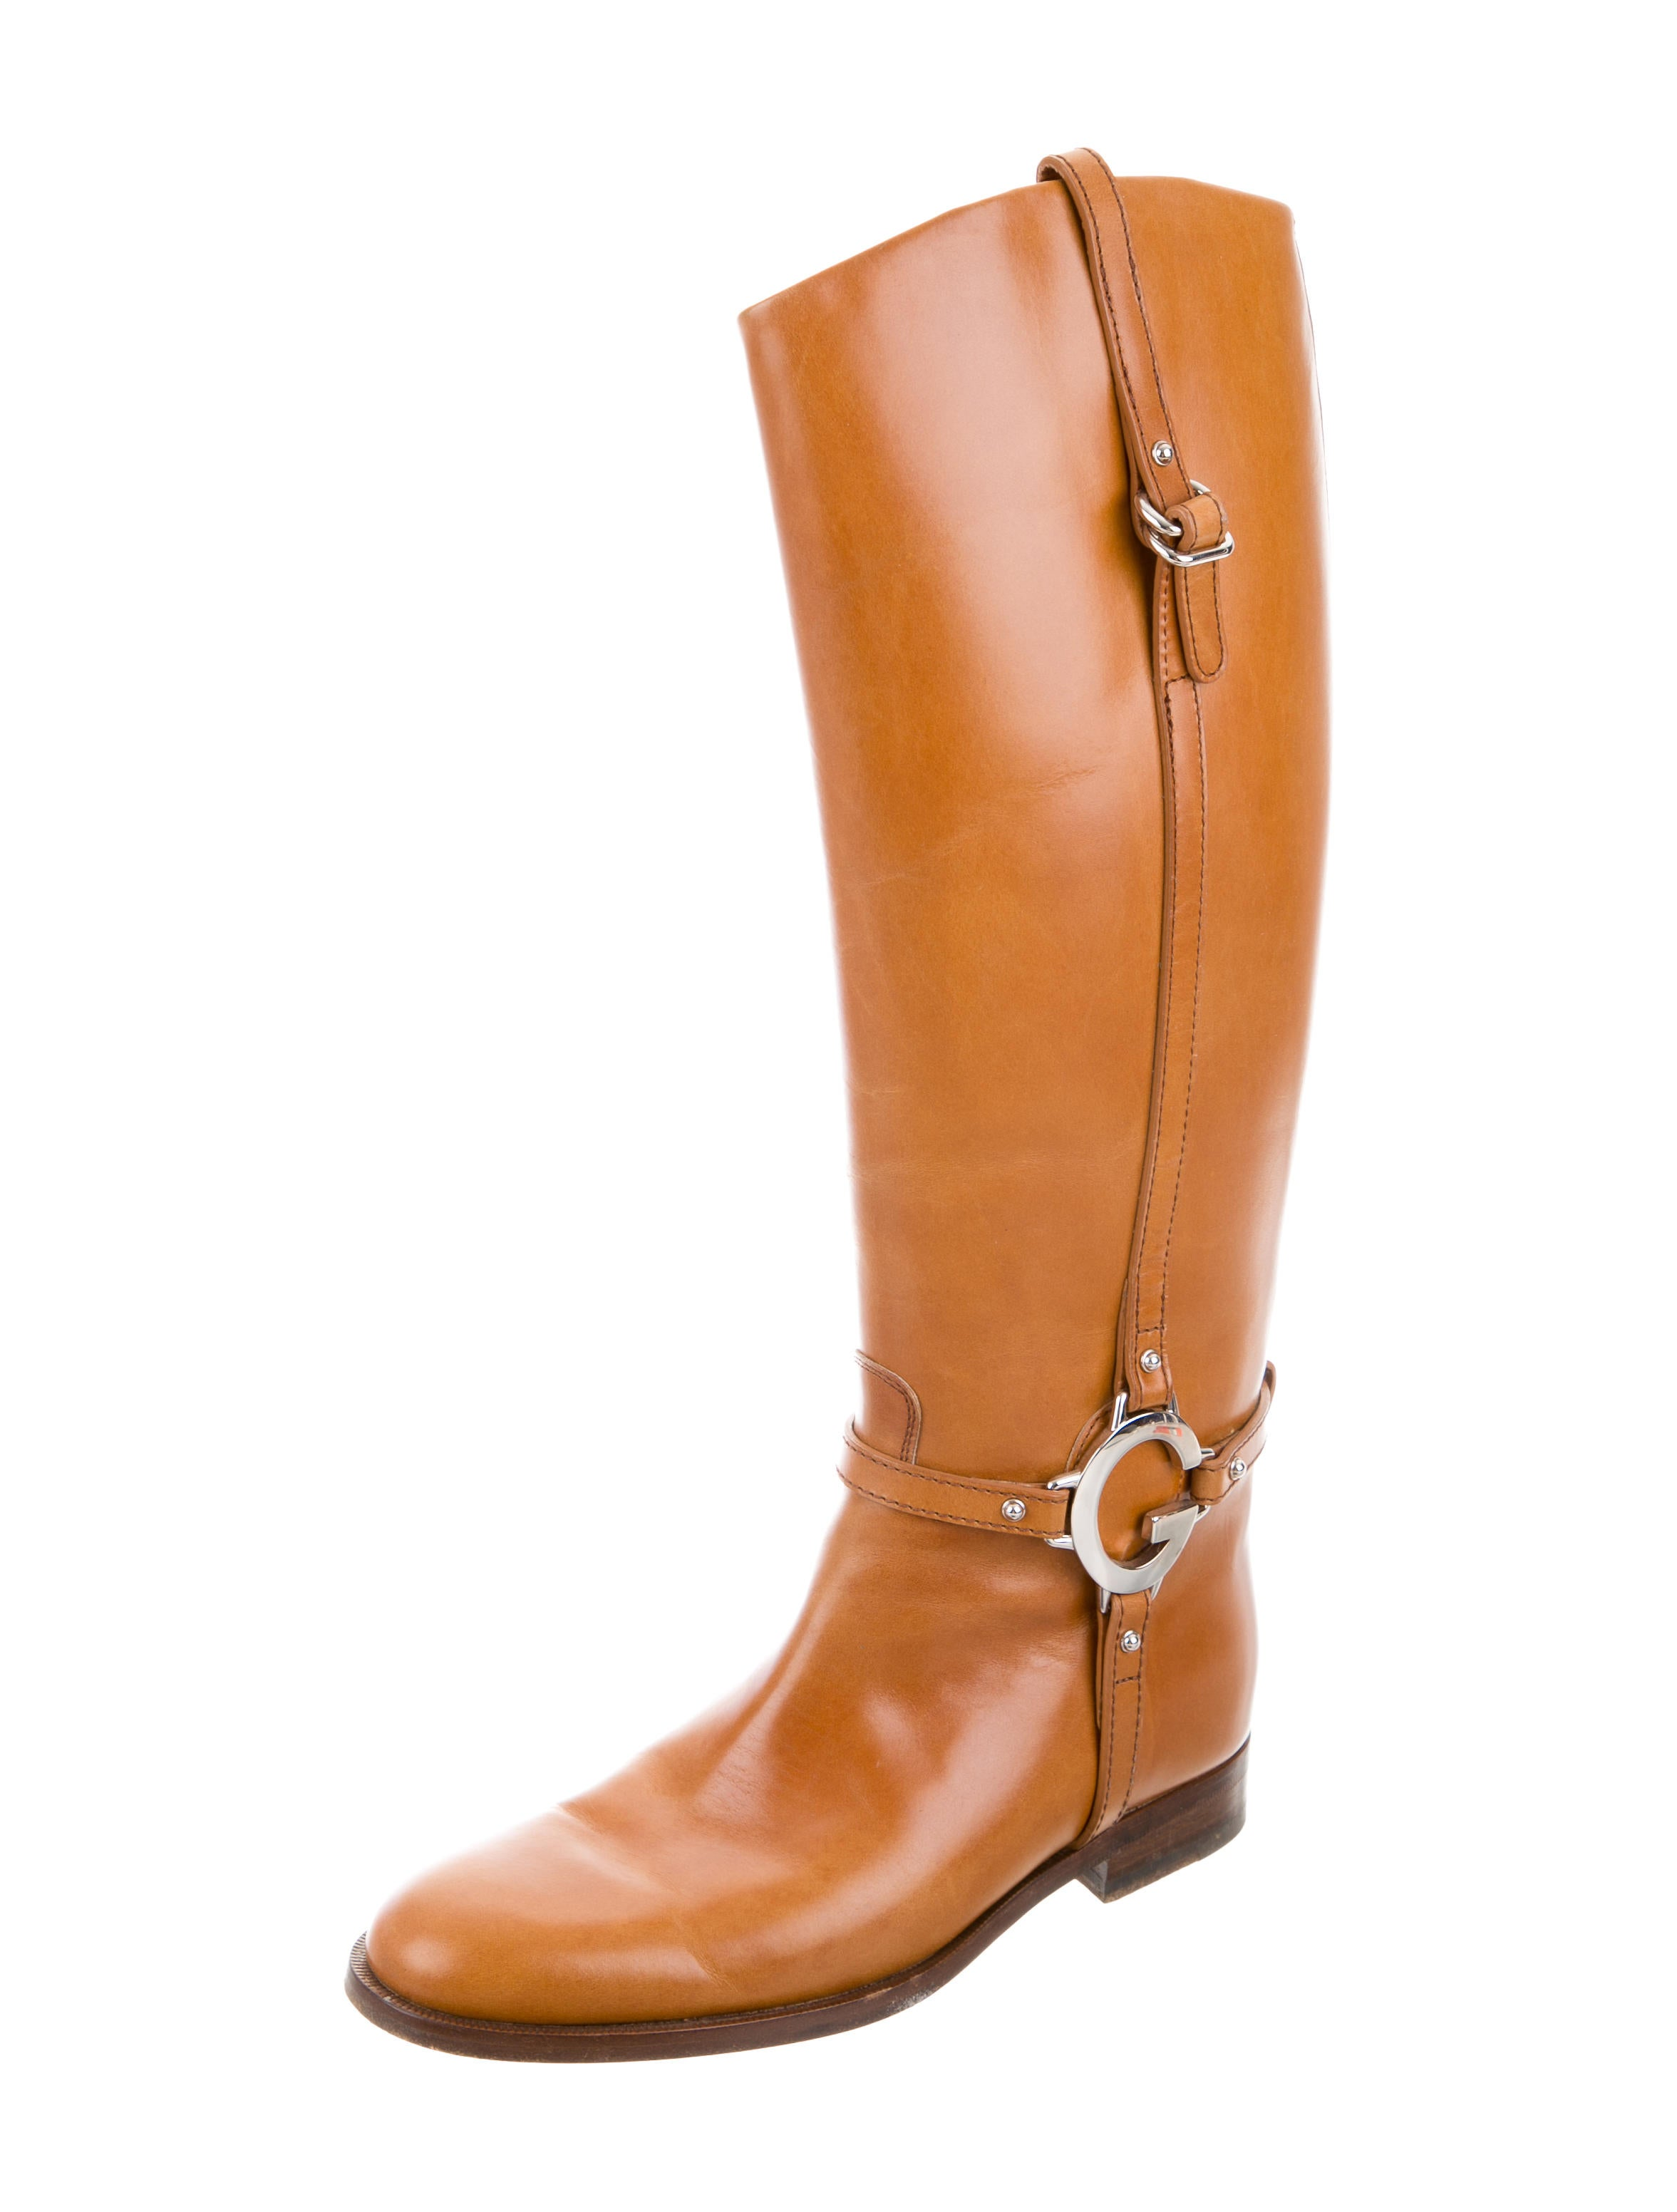 Gucci Logo Embellished Riding Boots Shoes Guc130220